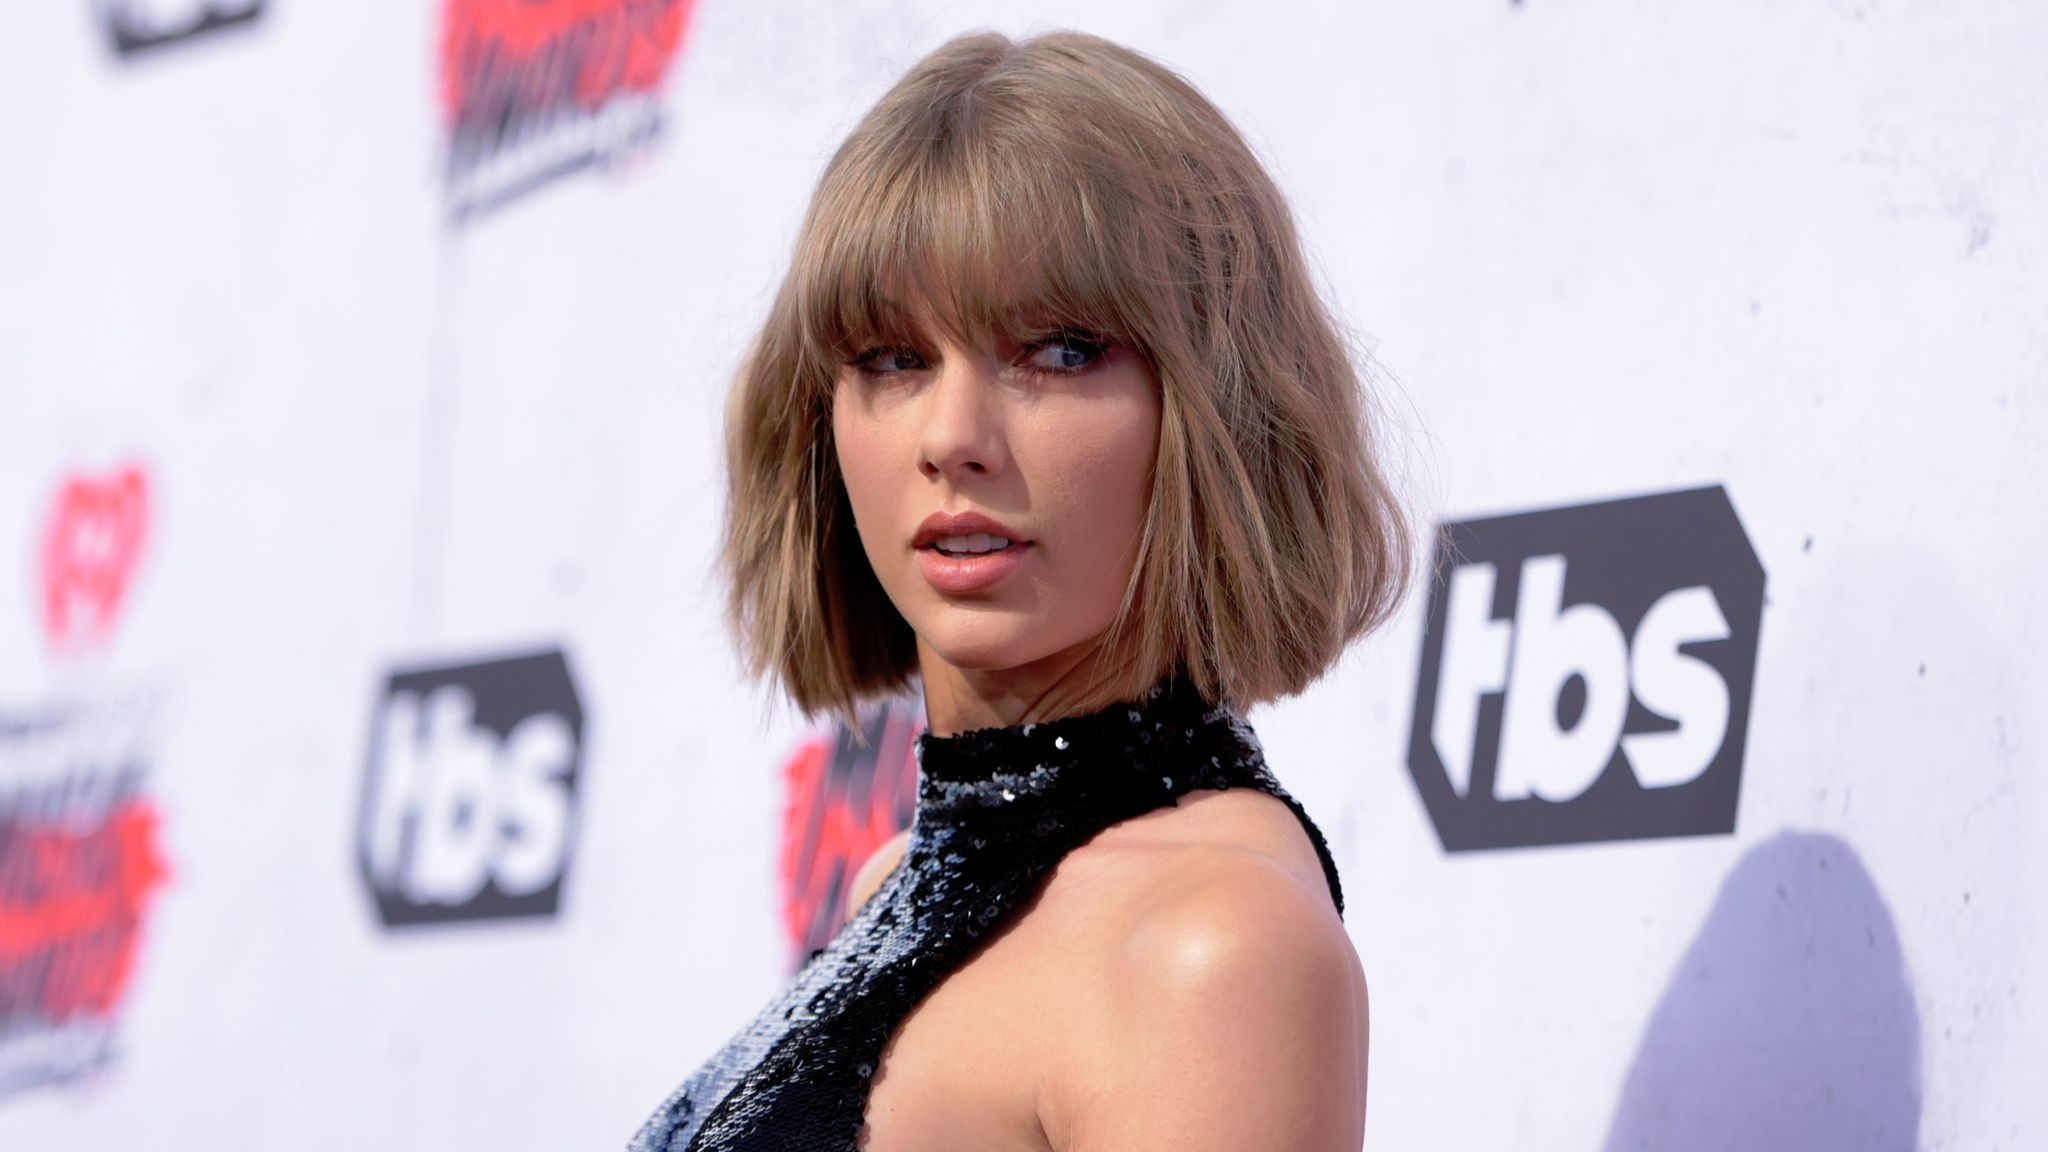 Taylor Swift's Allegations Cost Me Everything: DJ David Mueller